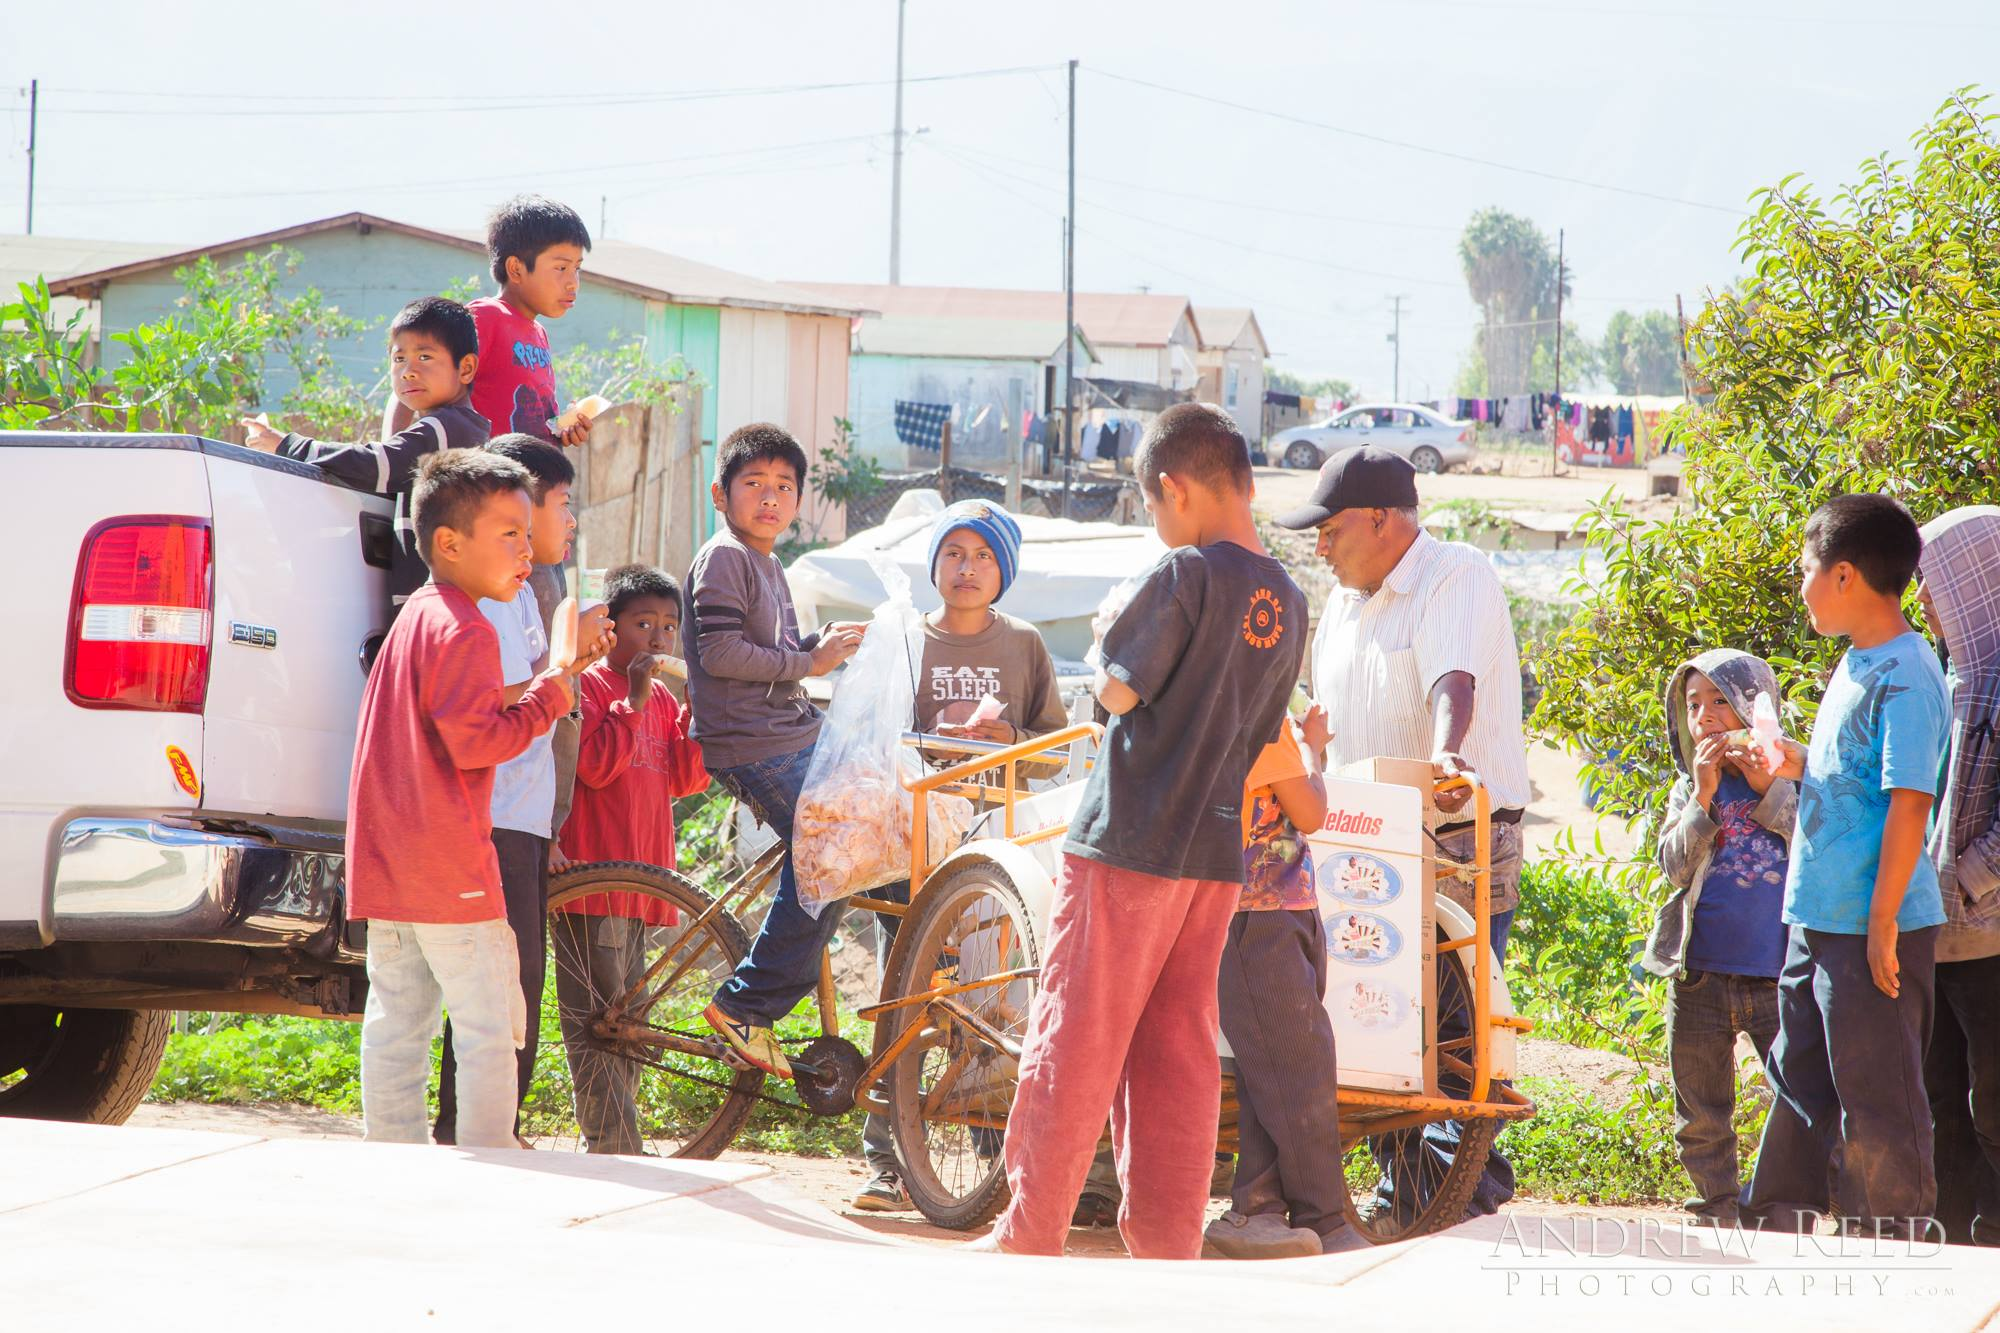 Some of the children having ice cream while Marco reminds them to keep things clean and to wear their shoes. Lack of cleanliness in these villages can lead to sickness and death and Marco is trying to break the cycle.